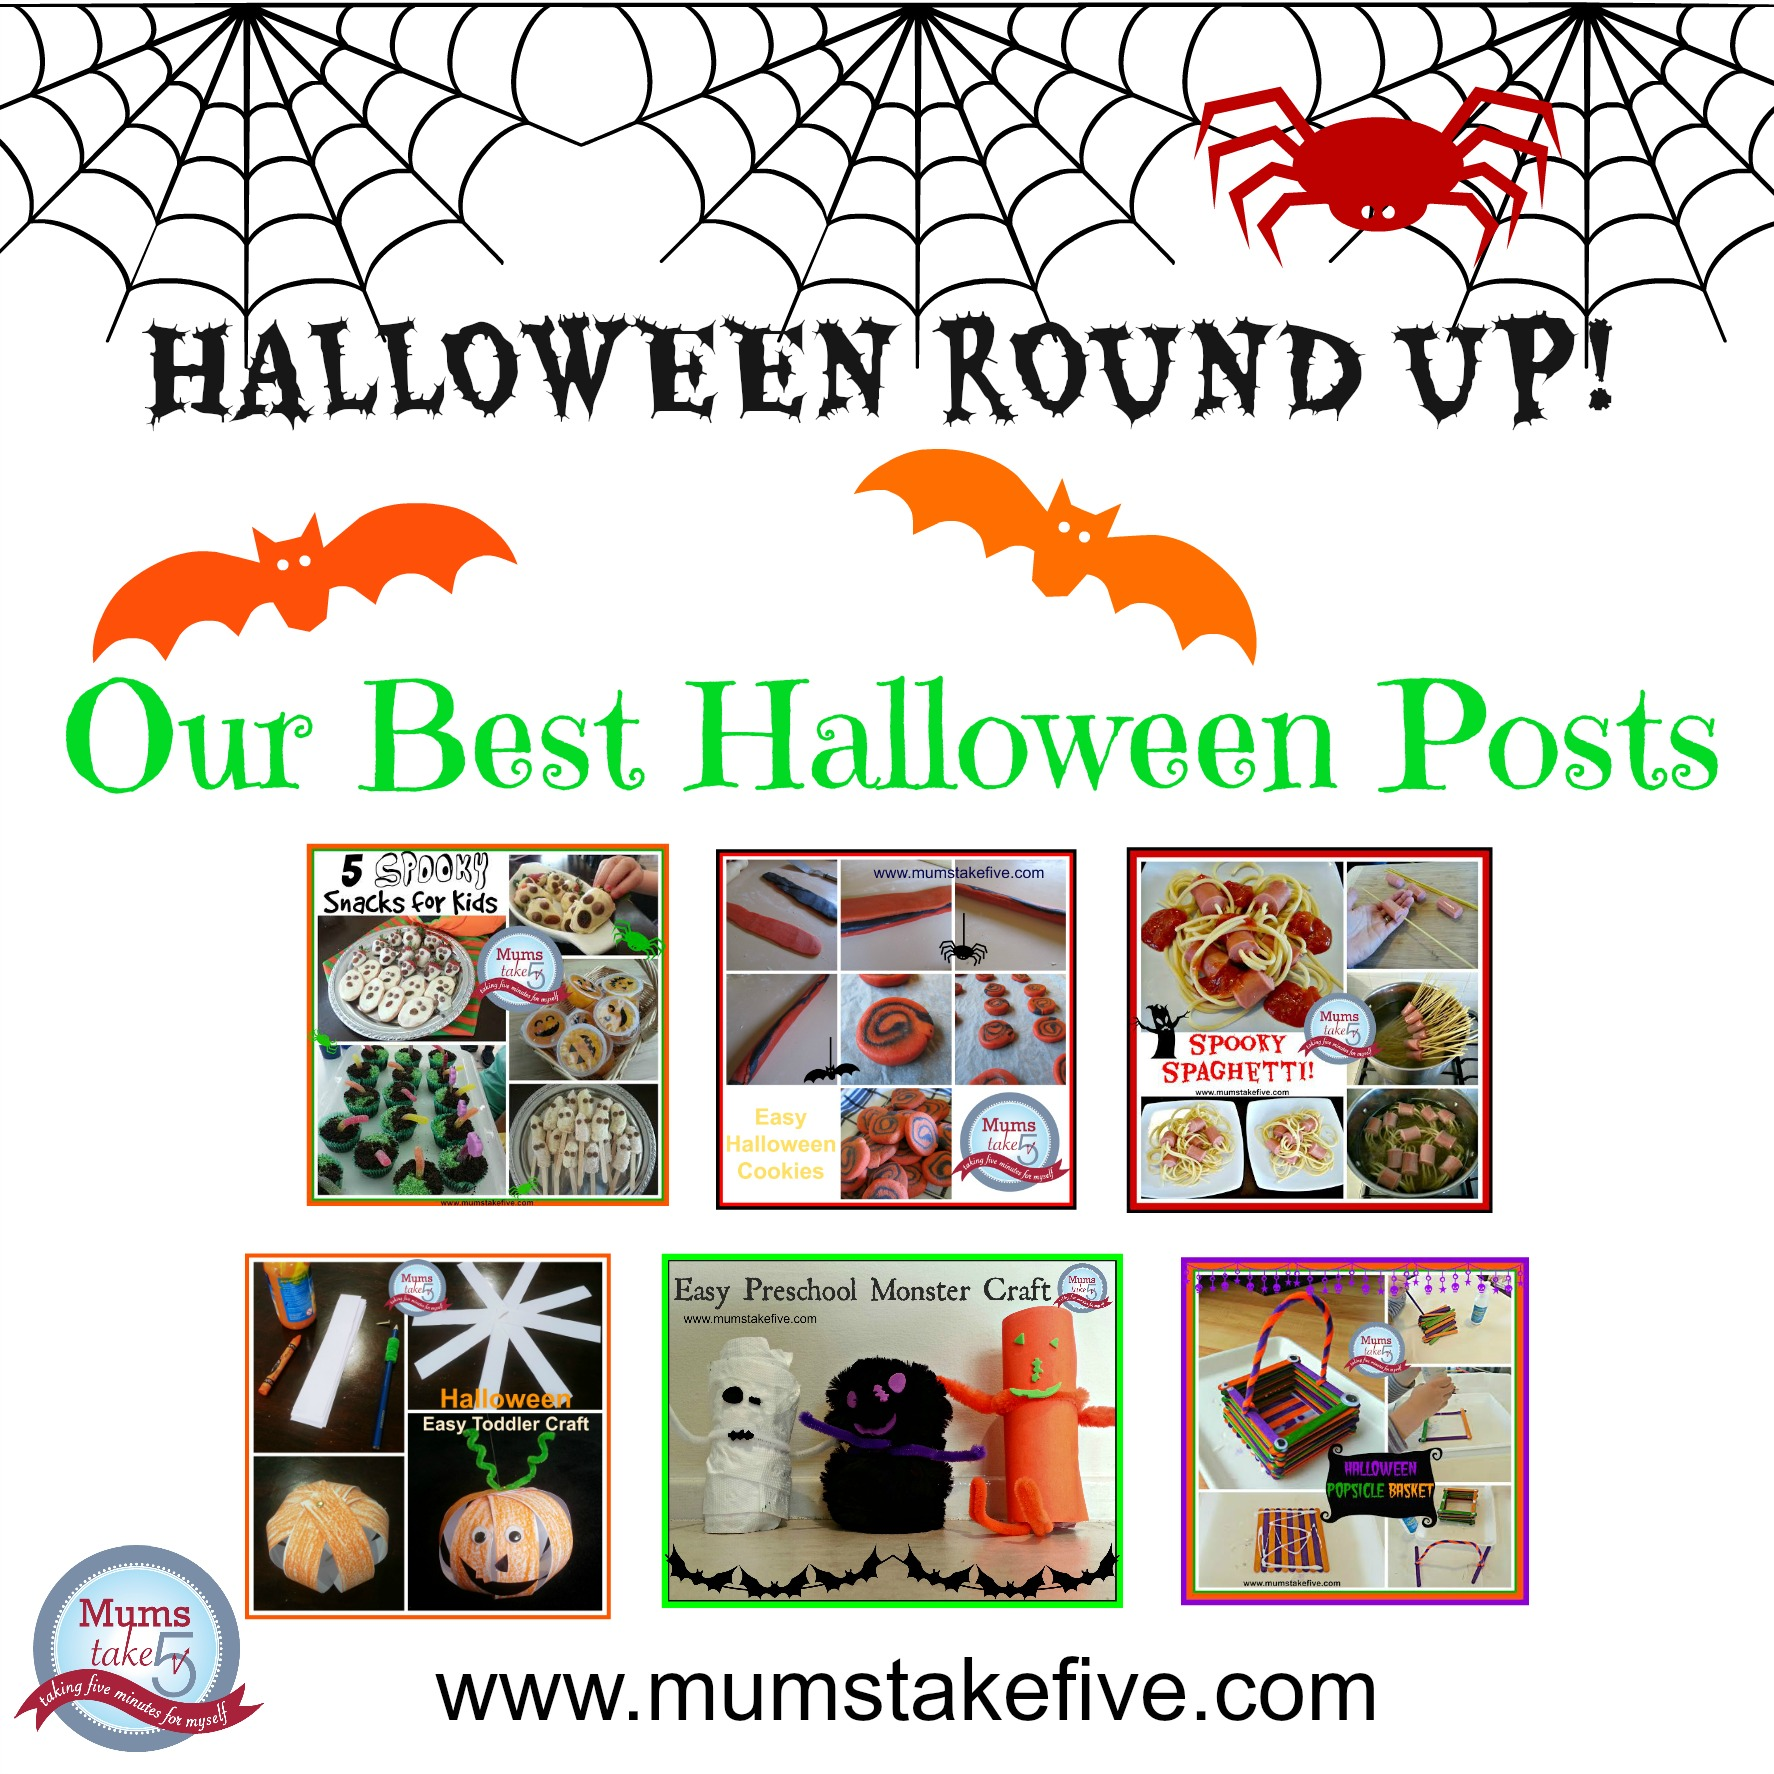 Halloween Recipe and Craft Ideas